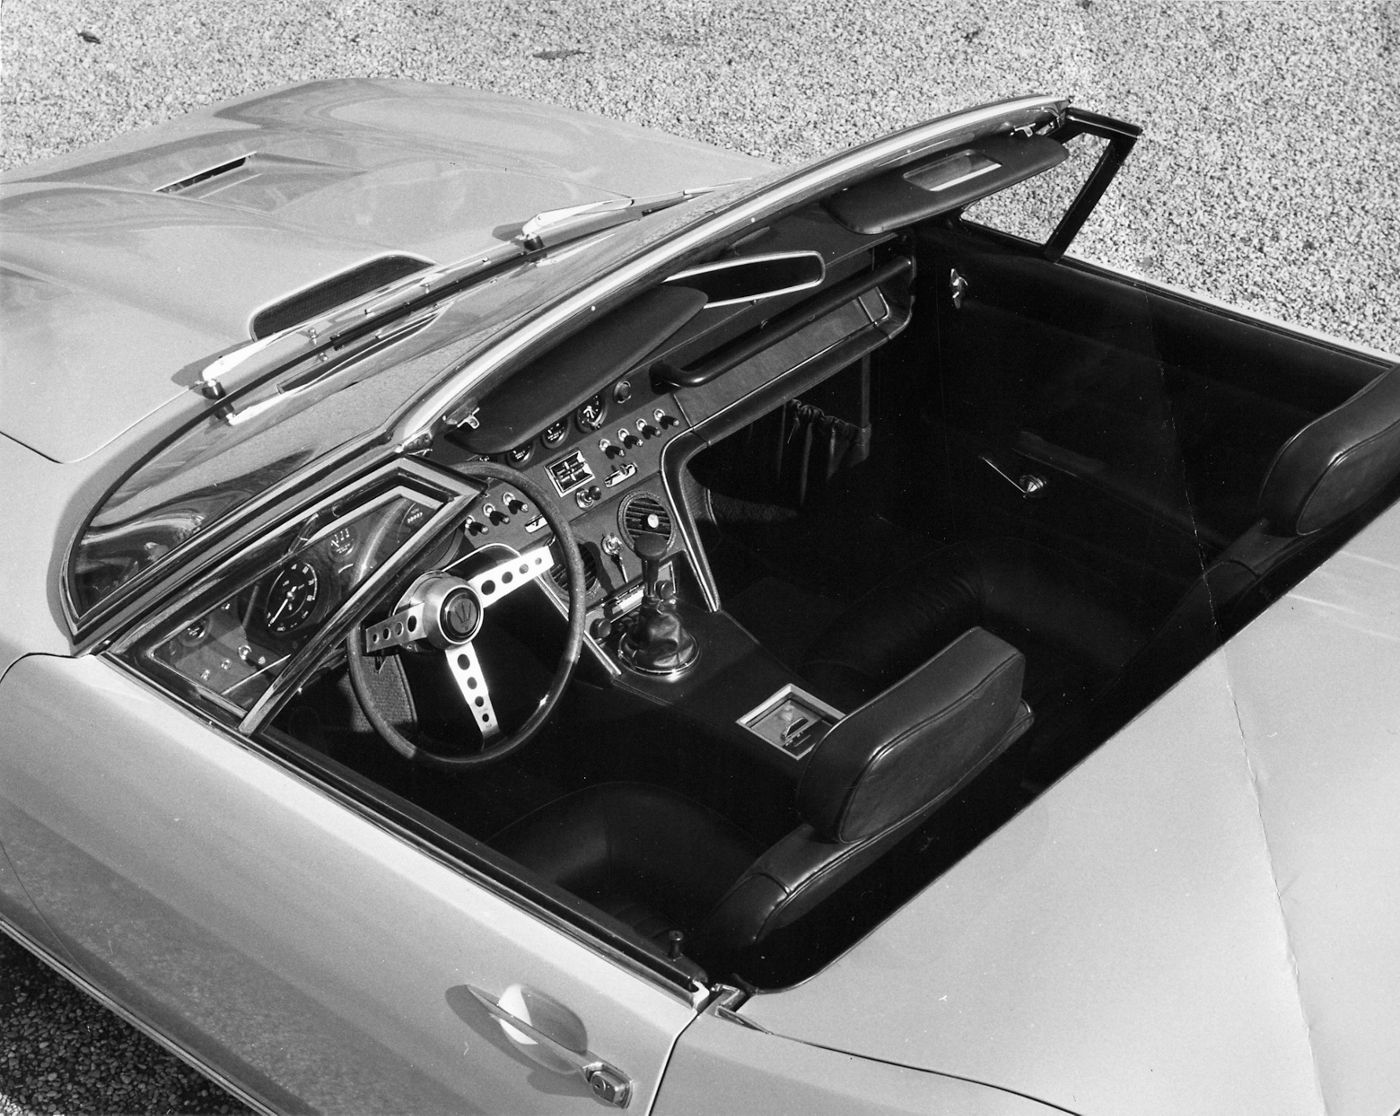 1967 Maserati Ghibli Spyder - the classic two-seater interior